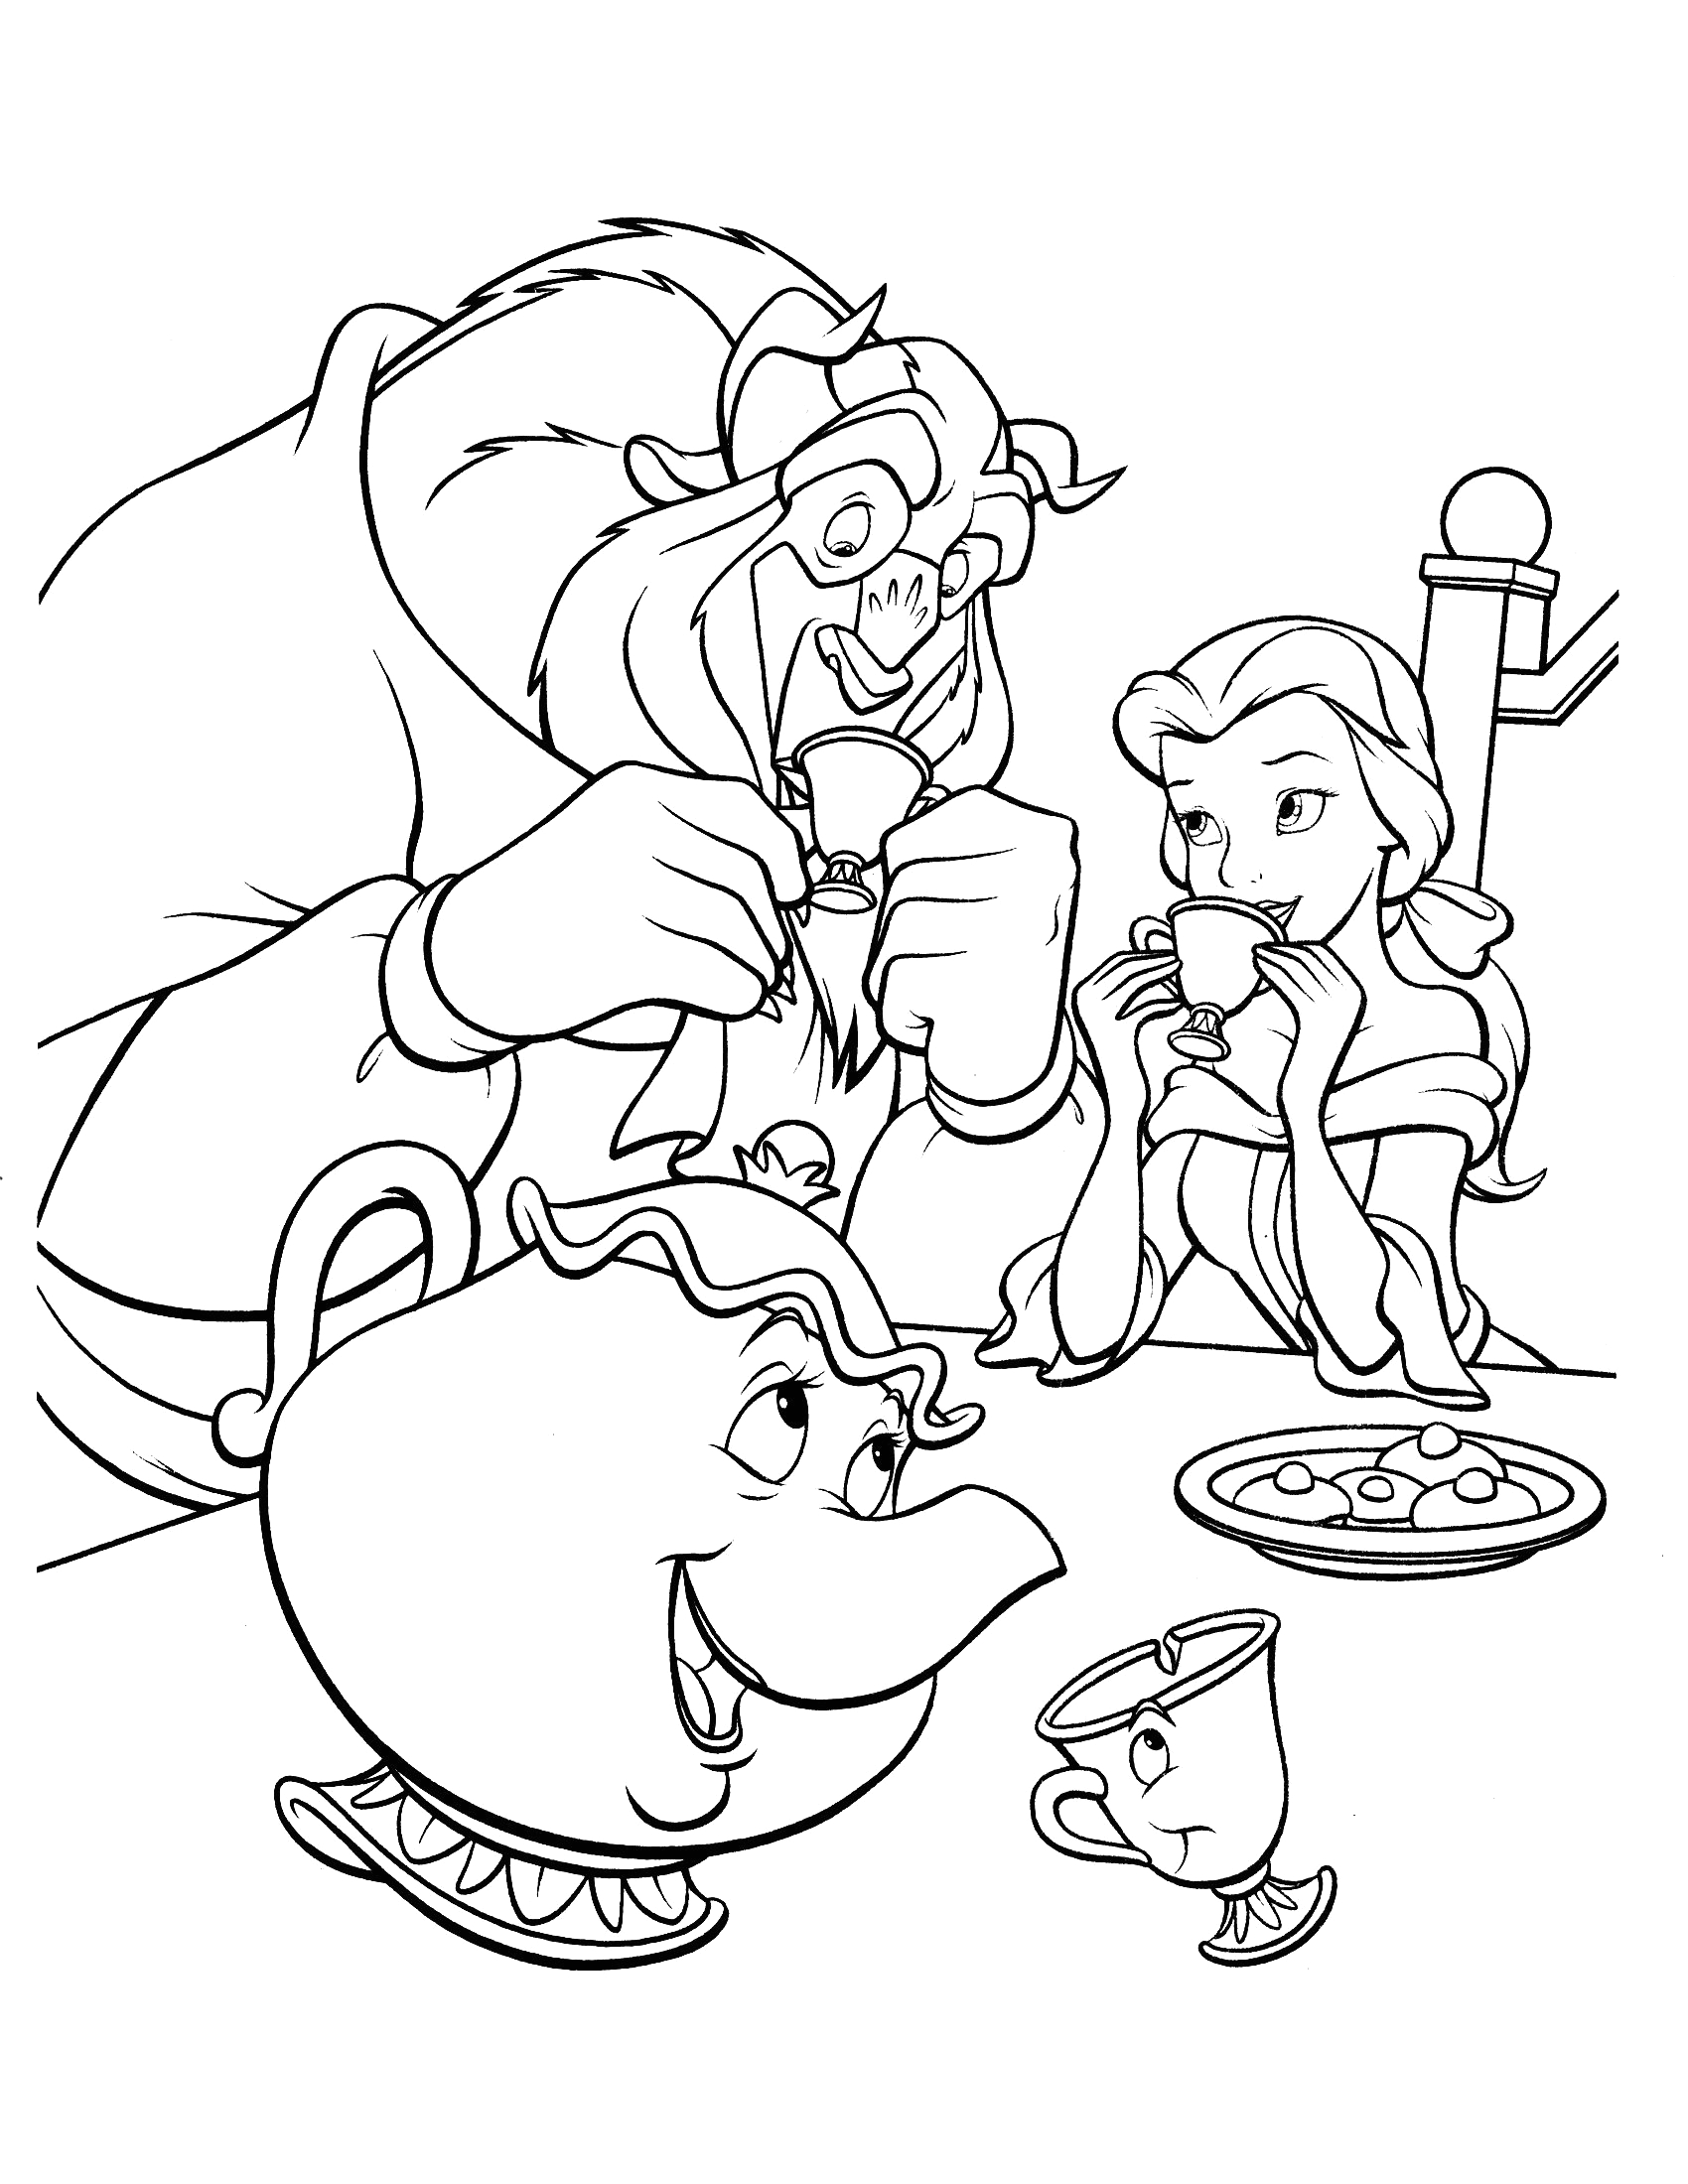 Coloring Pages From Beauty and the Beast Beauty and the Beast Coloring Pages and Book